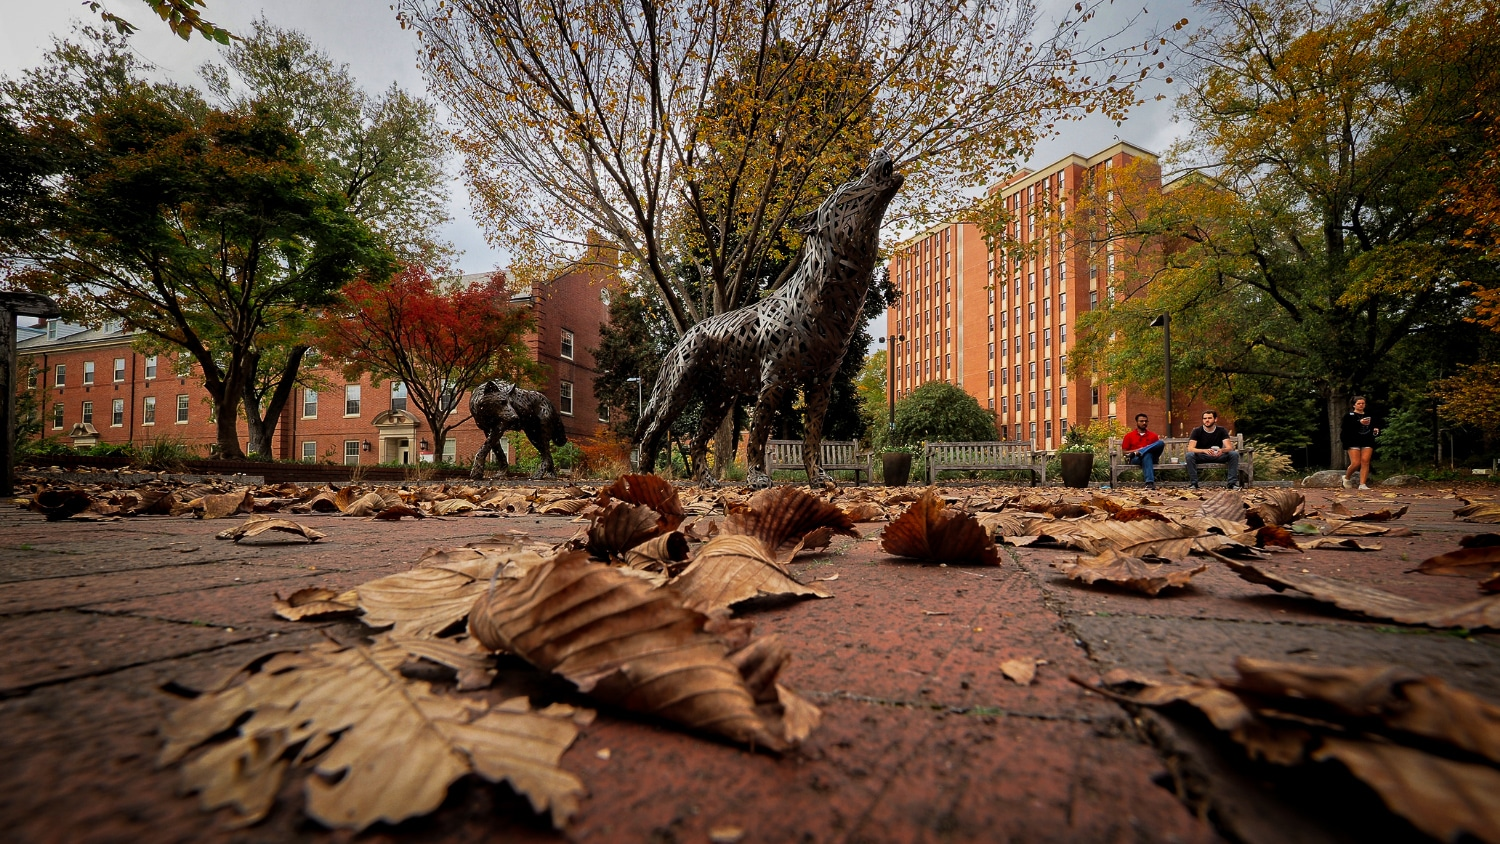 Cooper Wolves at Wolf Plaza surrounded by fall leaves